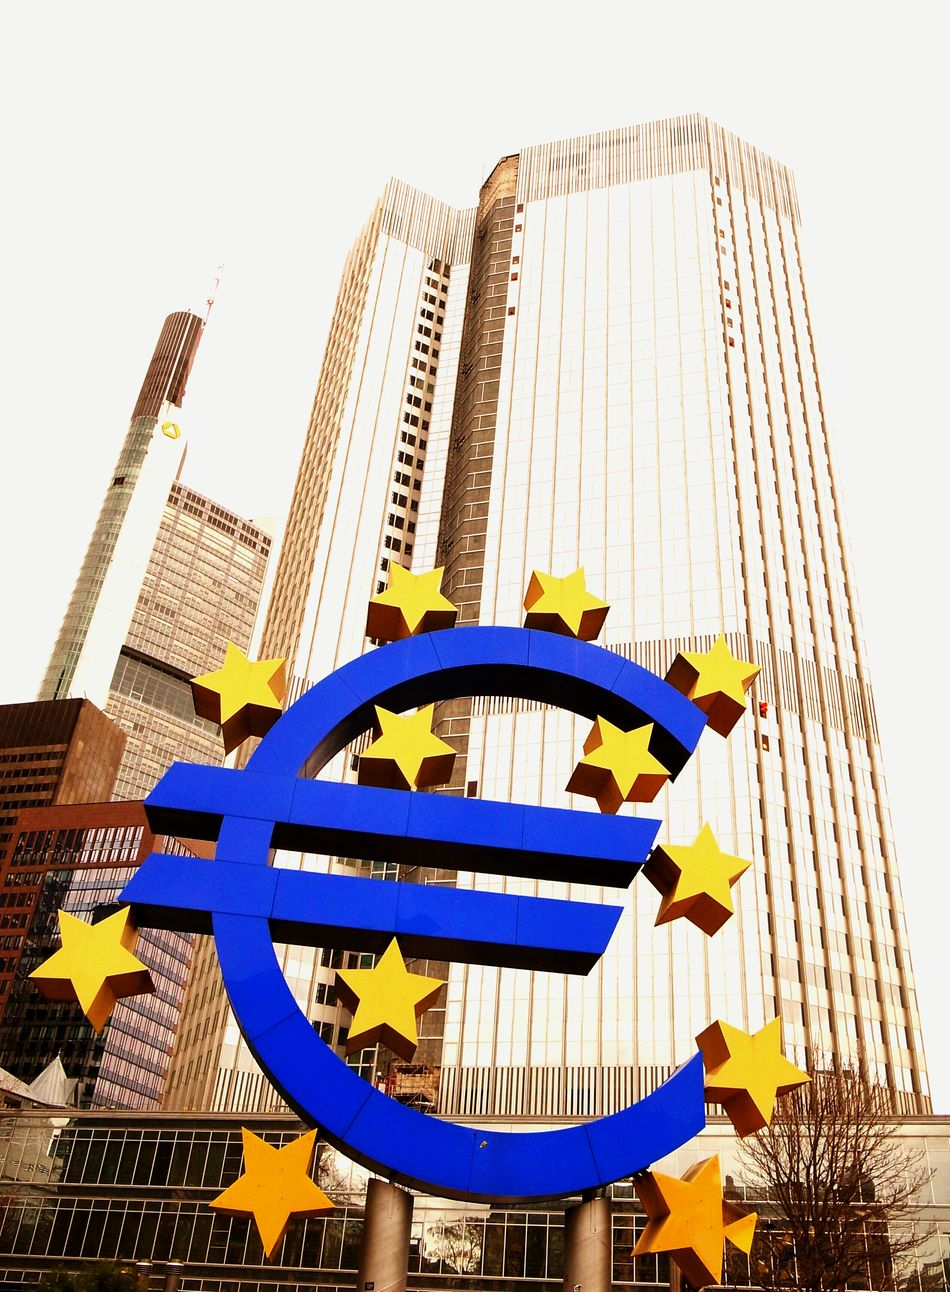 Euro Europe Landmark Money Symbol Europeanunion European Central Bank Signboard Signs Financial District